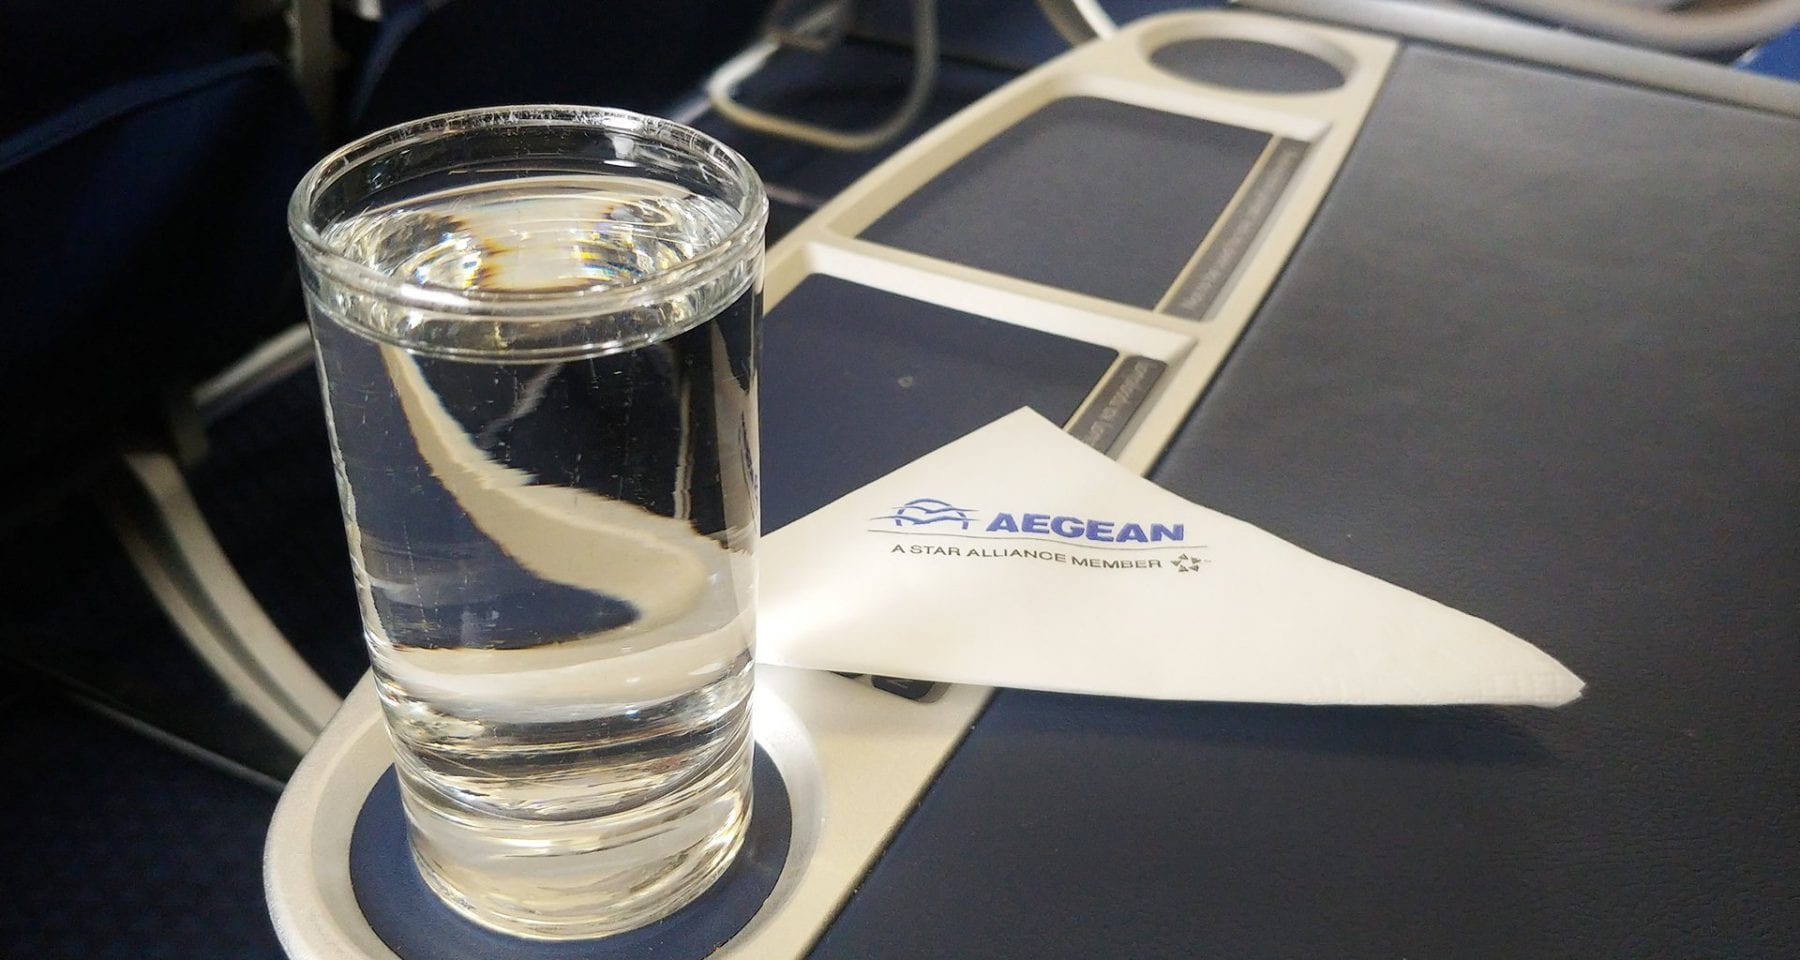 Aegean Airlines Welcome Drink Business Class